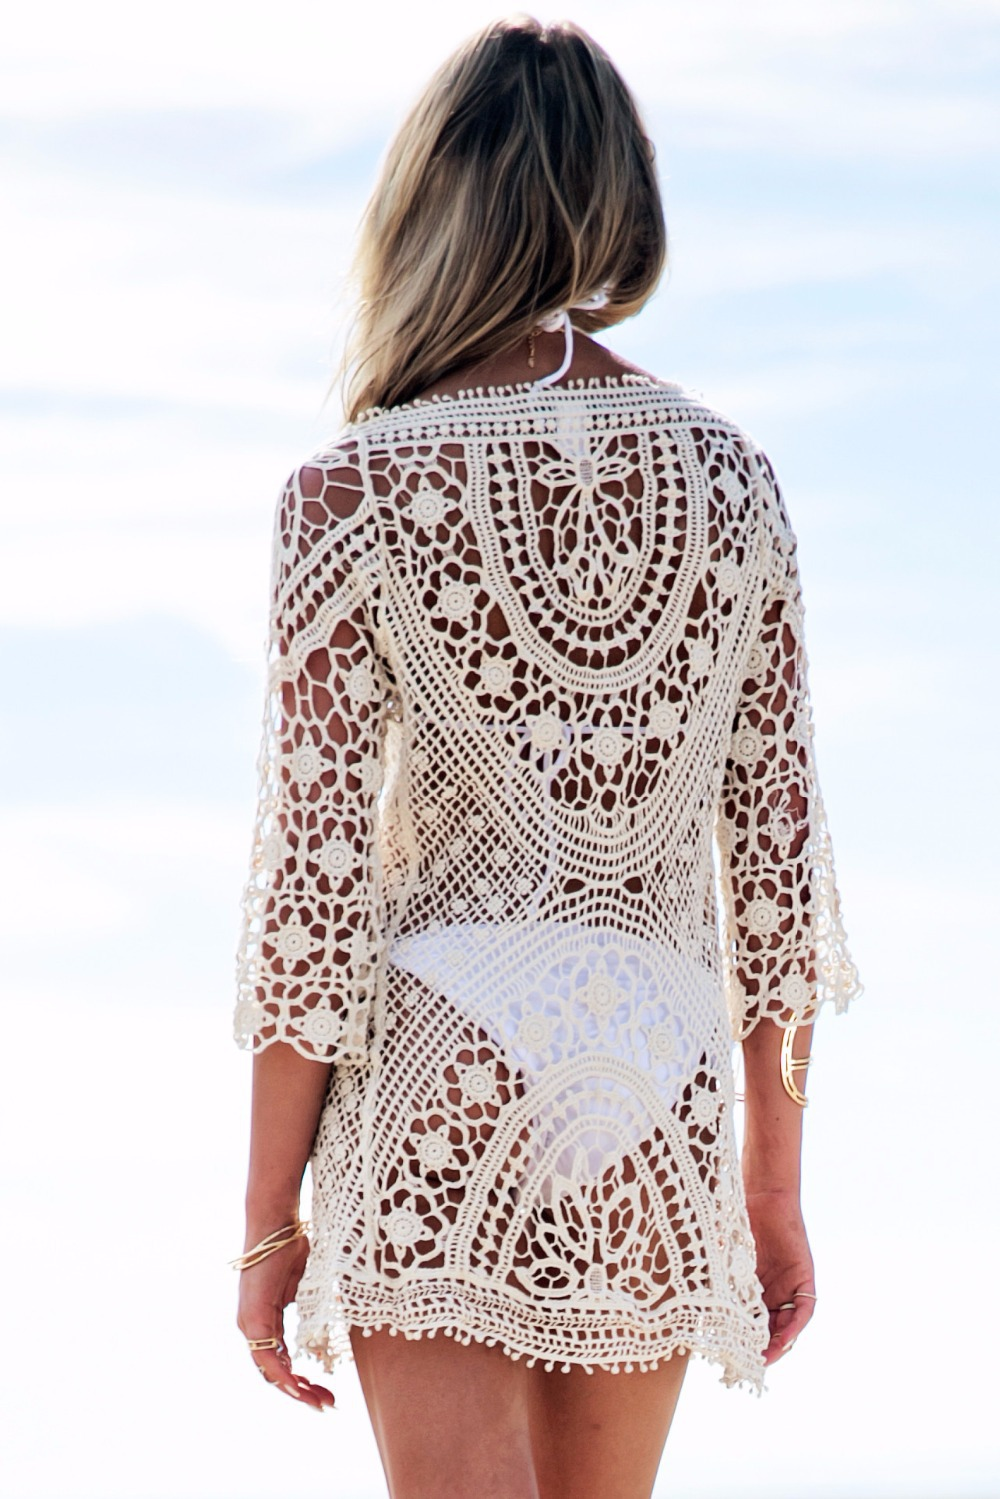 acheter hot mode t crochet plage cover up robe sexy maillot de bain cover up. Black Bedroom Furniture Sets. Home Design Ideas